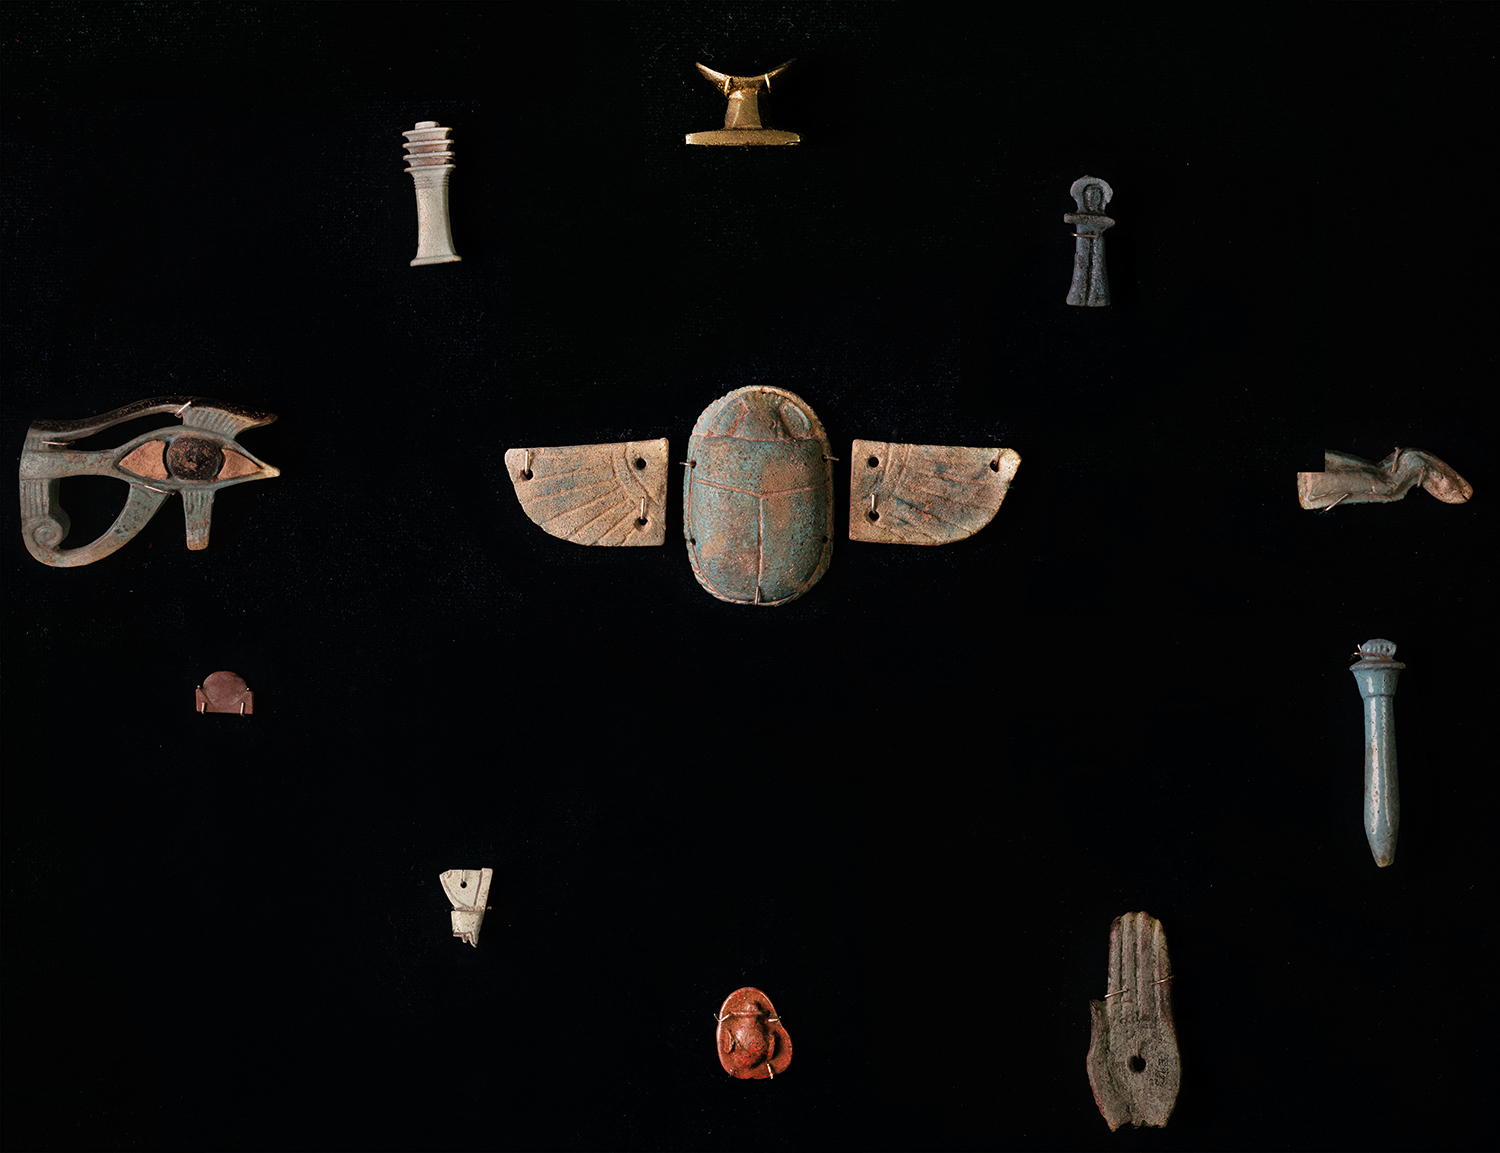 Figure 1: The Egyptians buried their dead with objects they believed would ensure a successful transition to the afterlife.